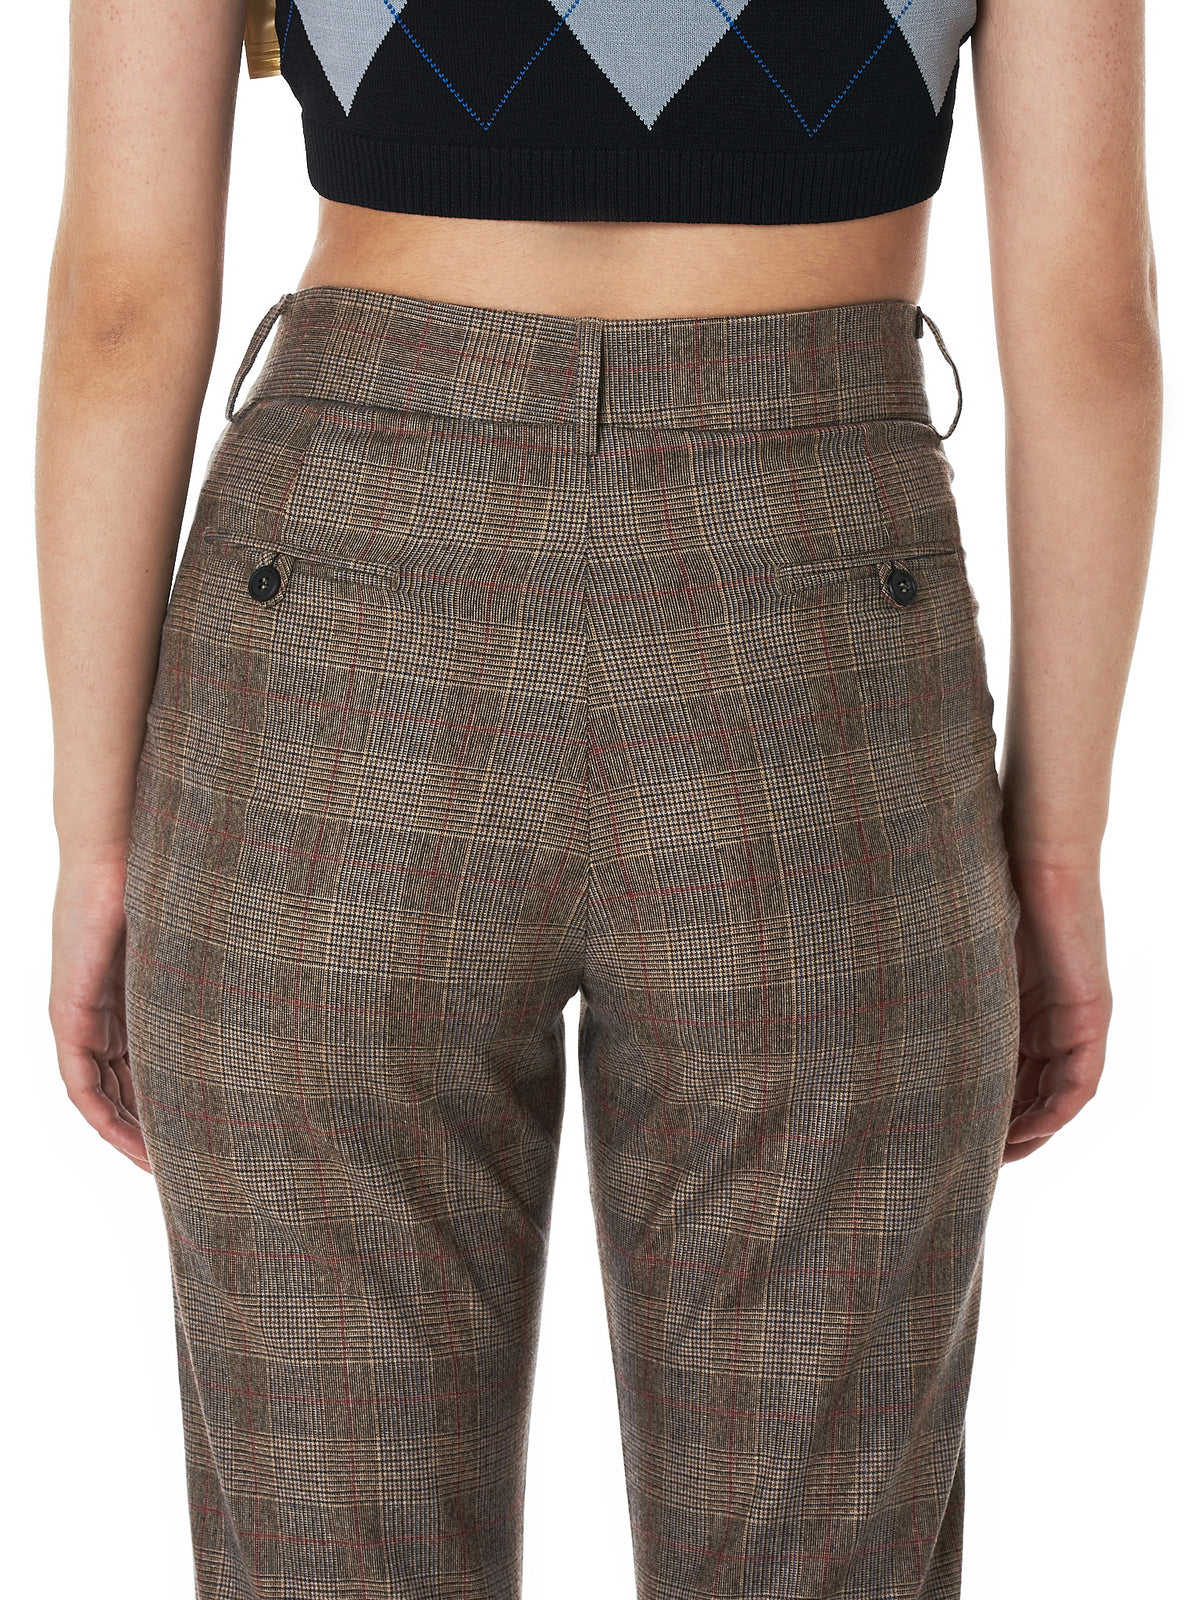 Folded Houndstooth Trouser (DW4TR5-BROWN-CHECK)